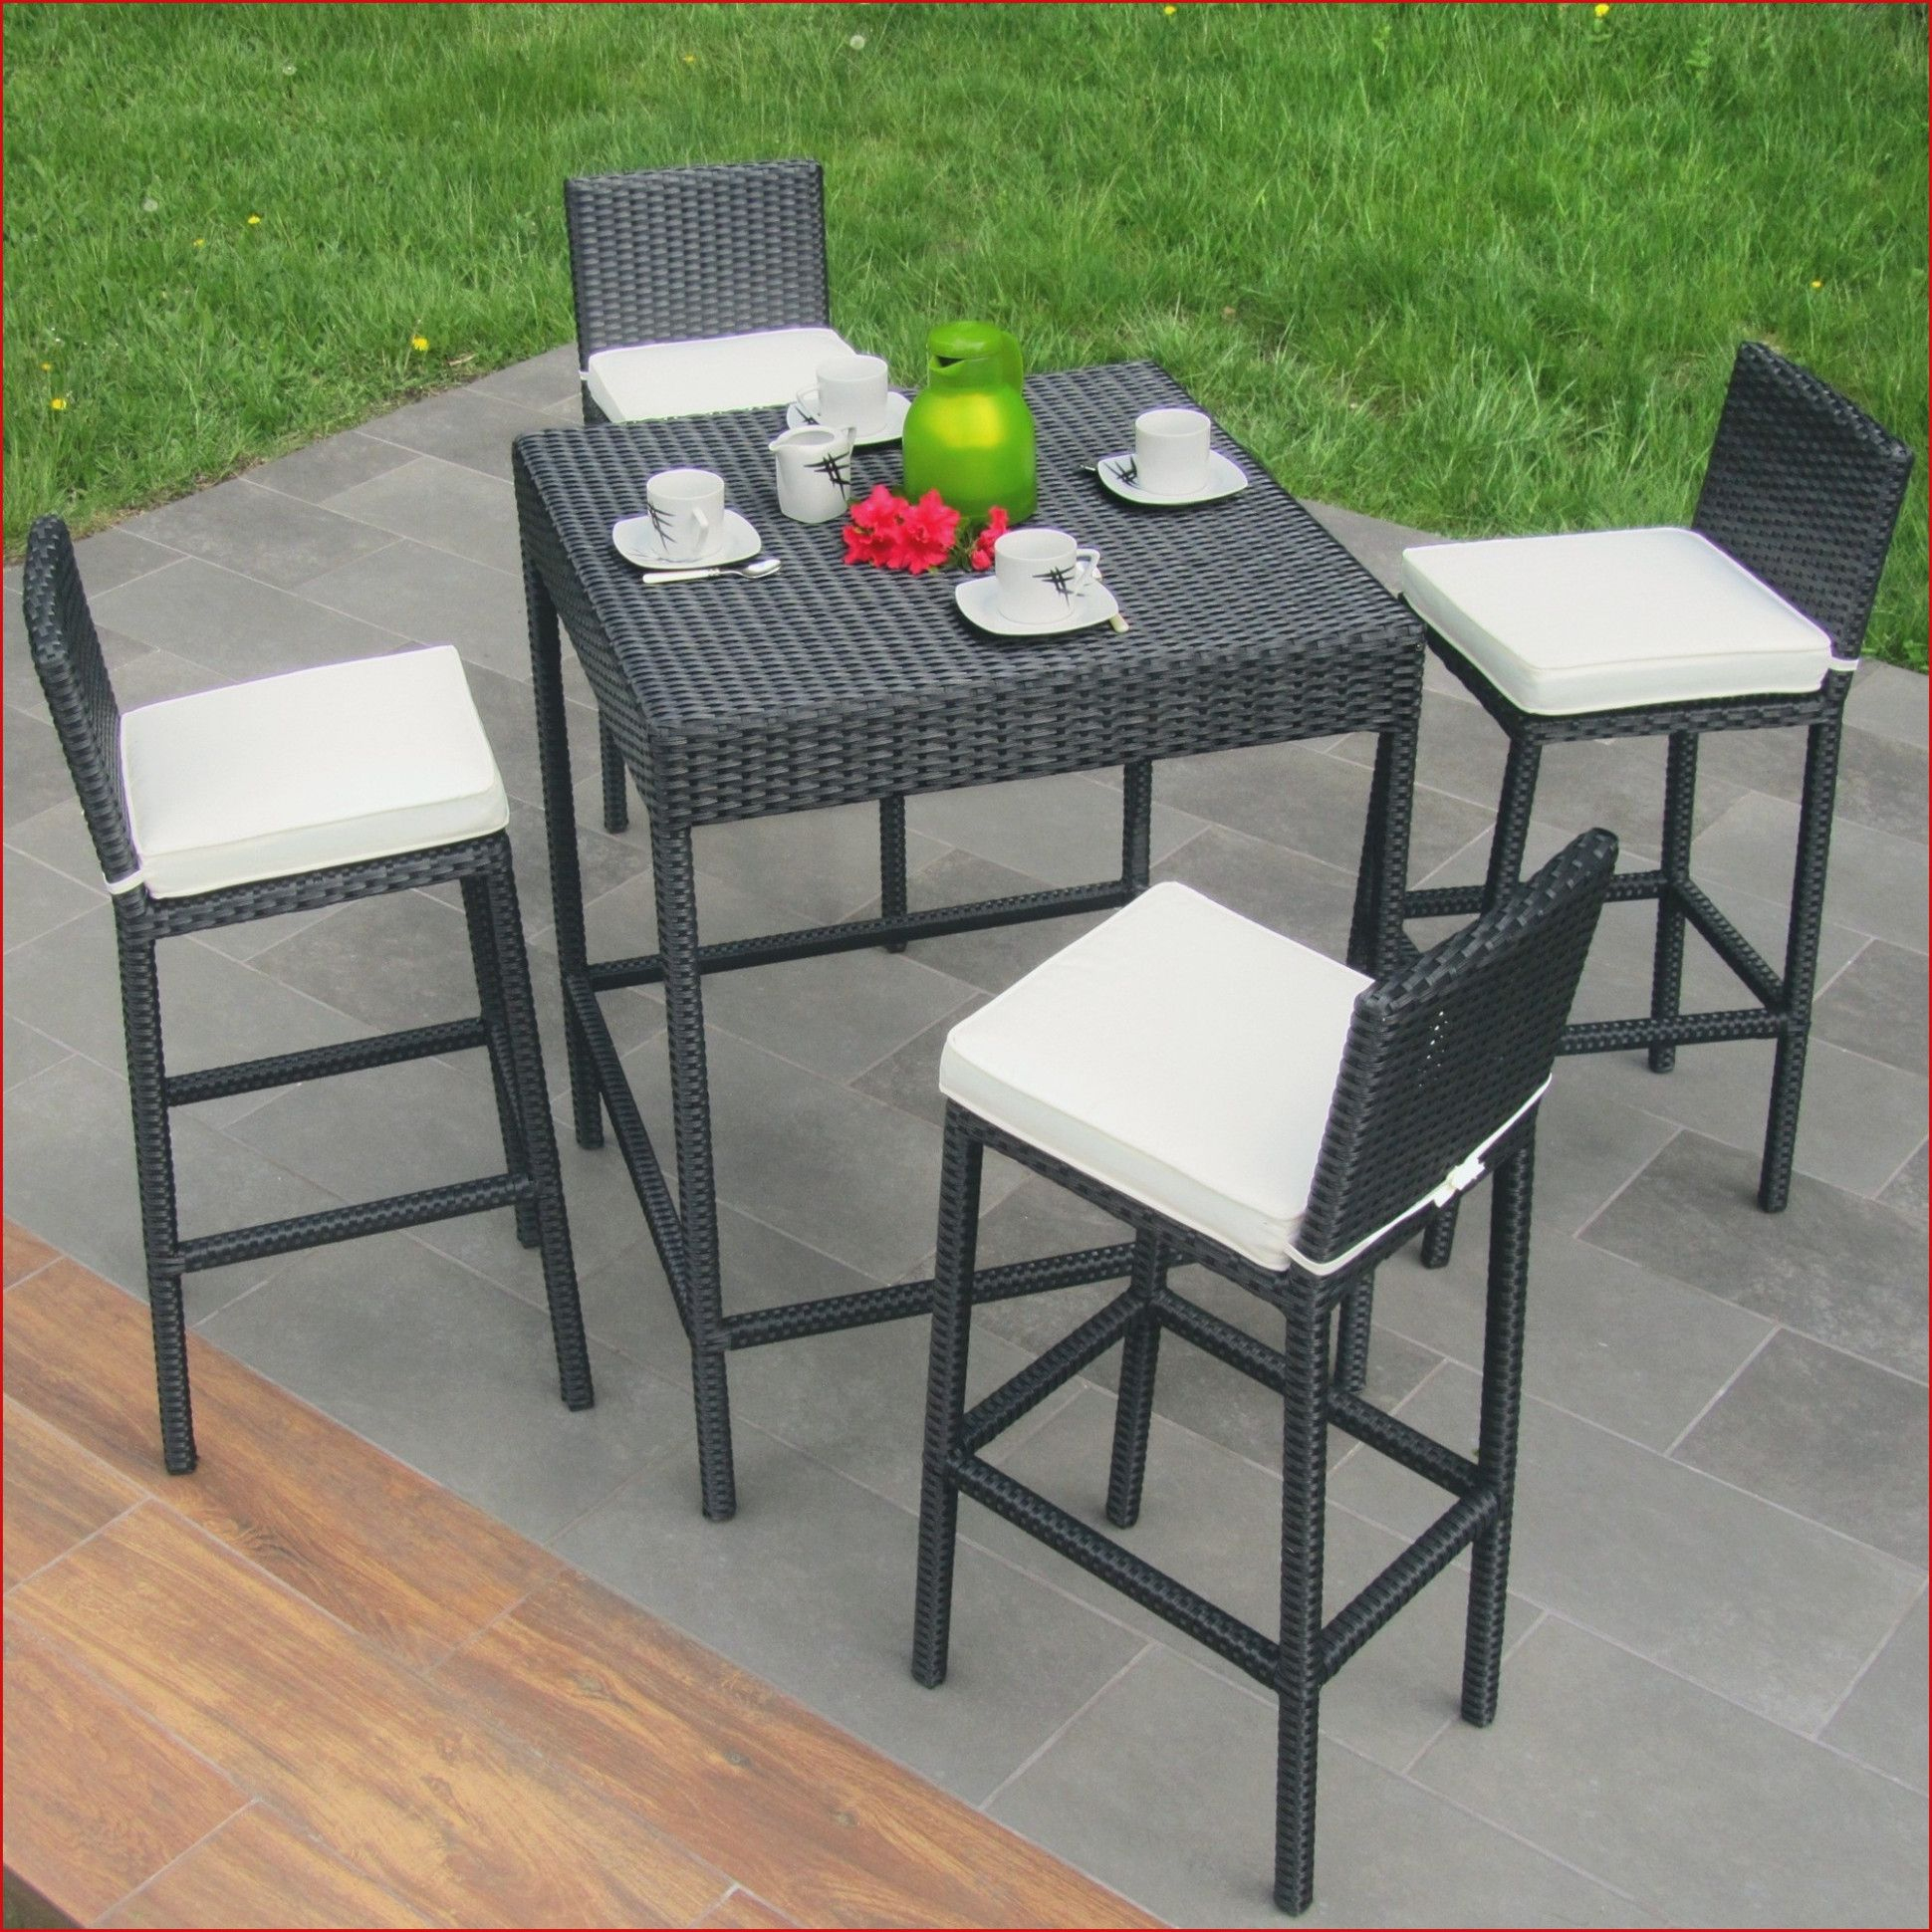 Table De Jardin Ikea In 2020 Avec Ikea Table Pliante Jardin Idees Conception Jardin Idees Conception Jardin